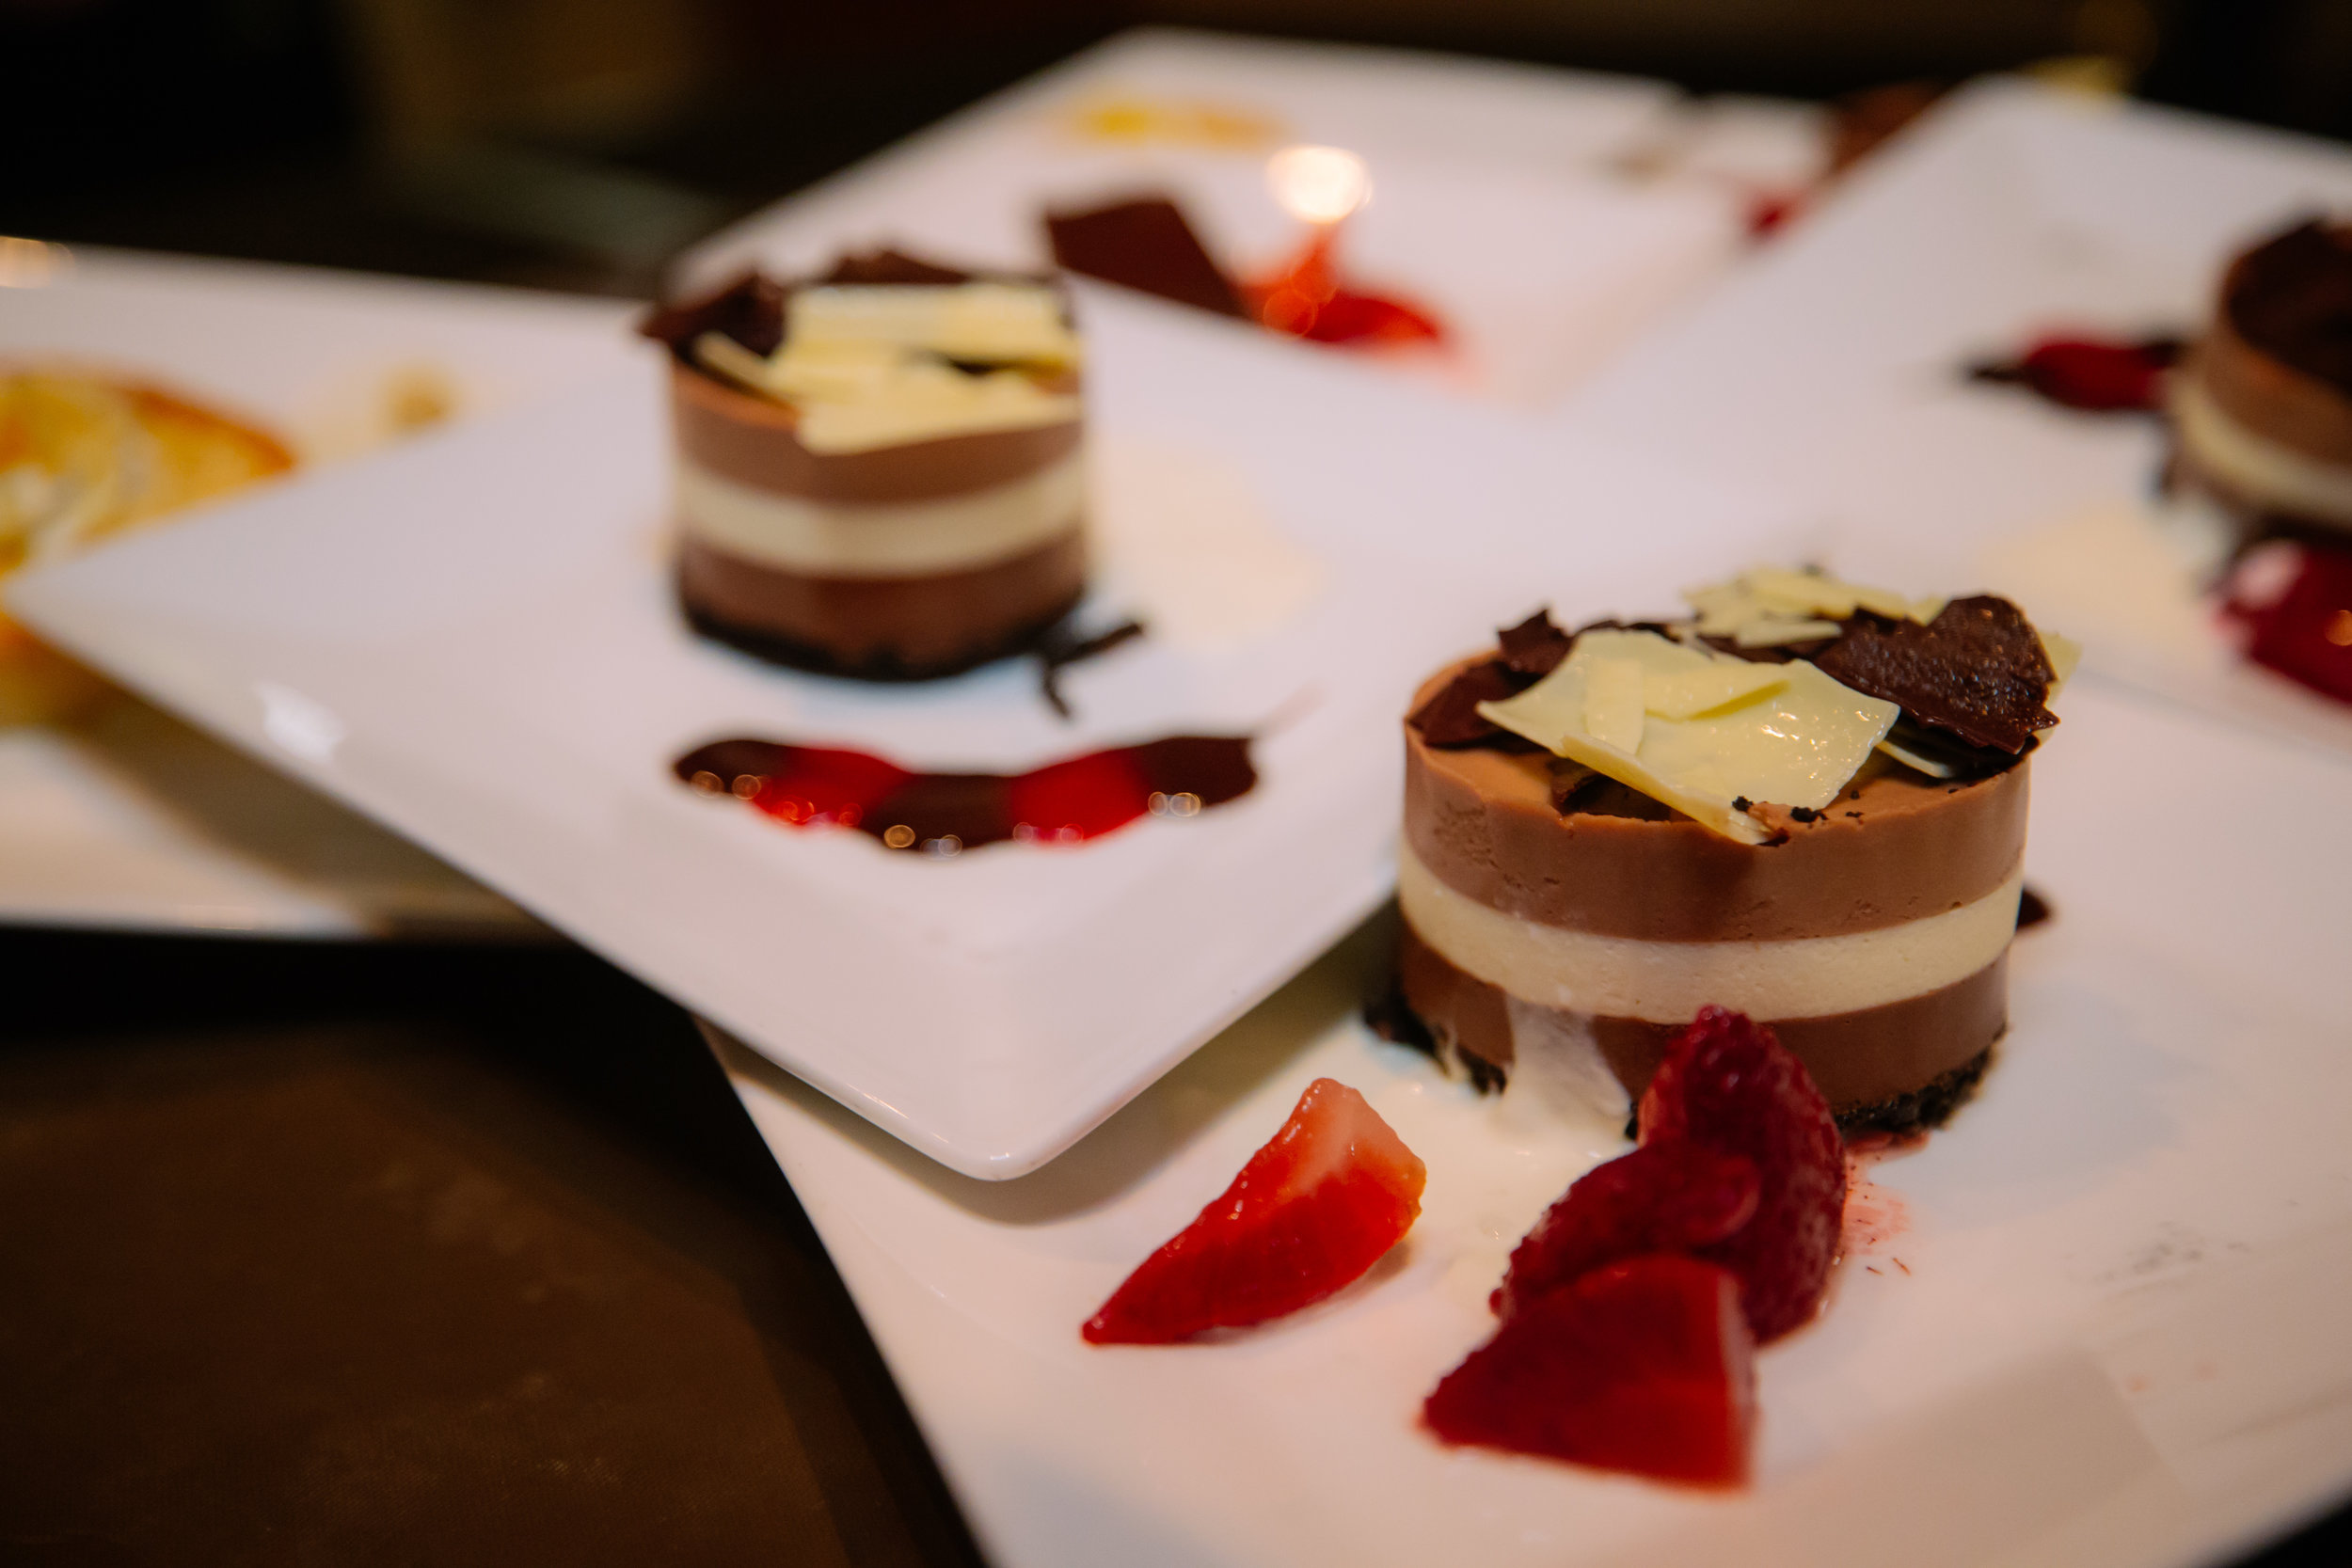 Copy of Plated chocolate dessert with berries